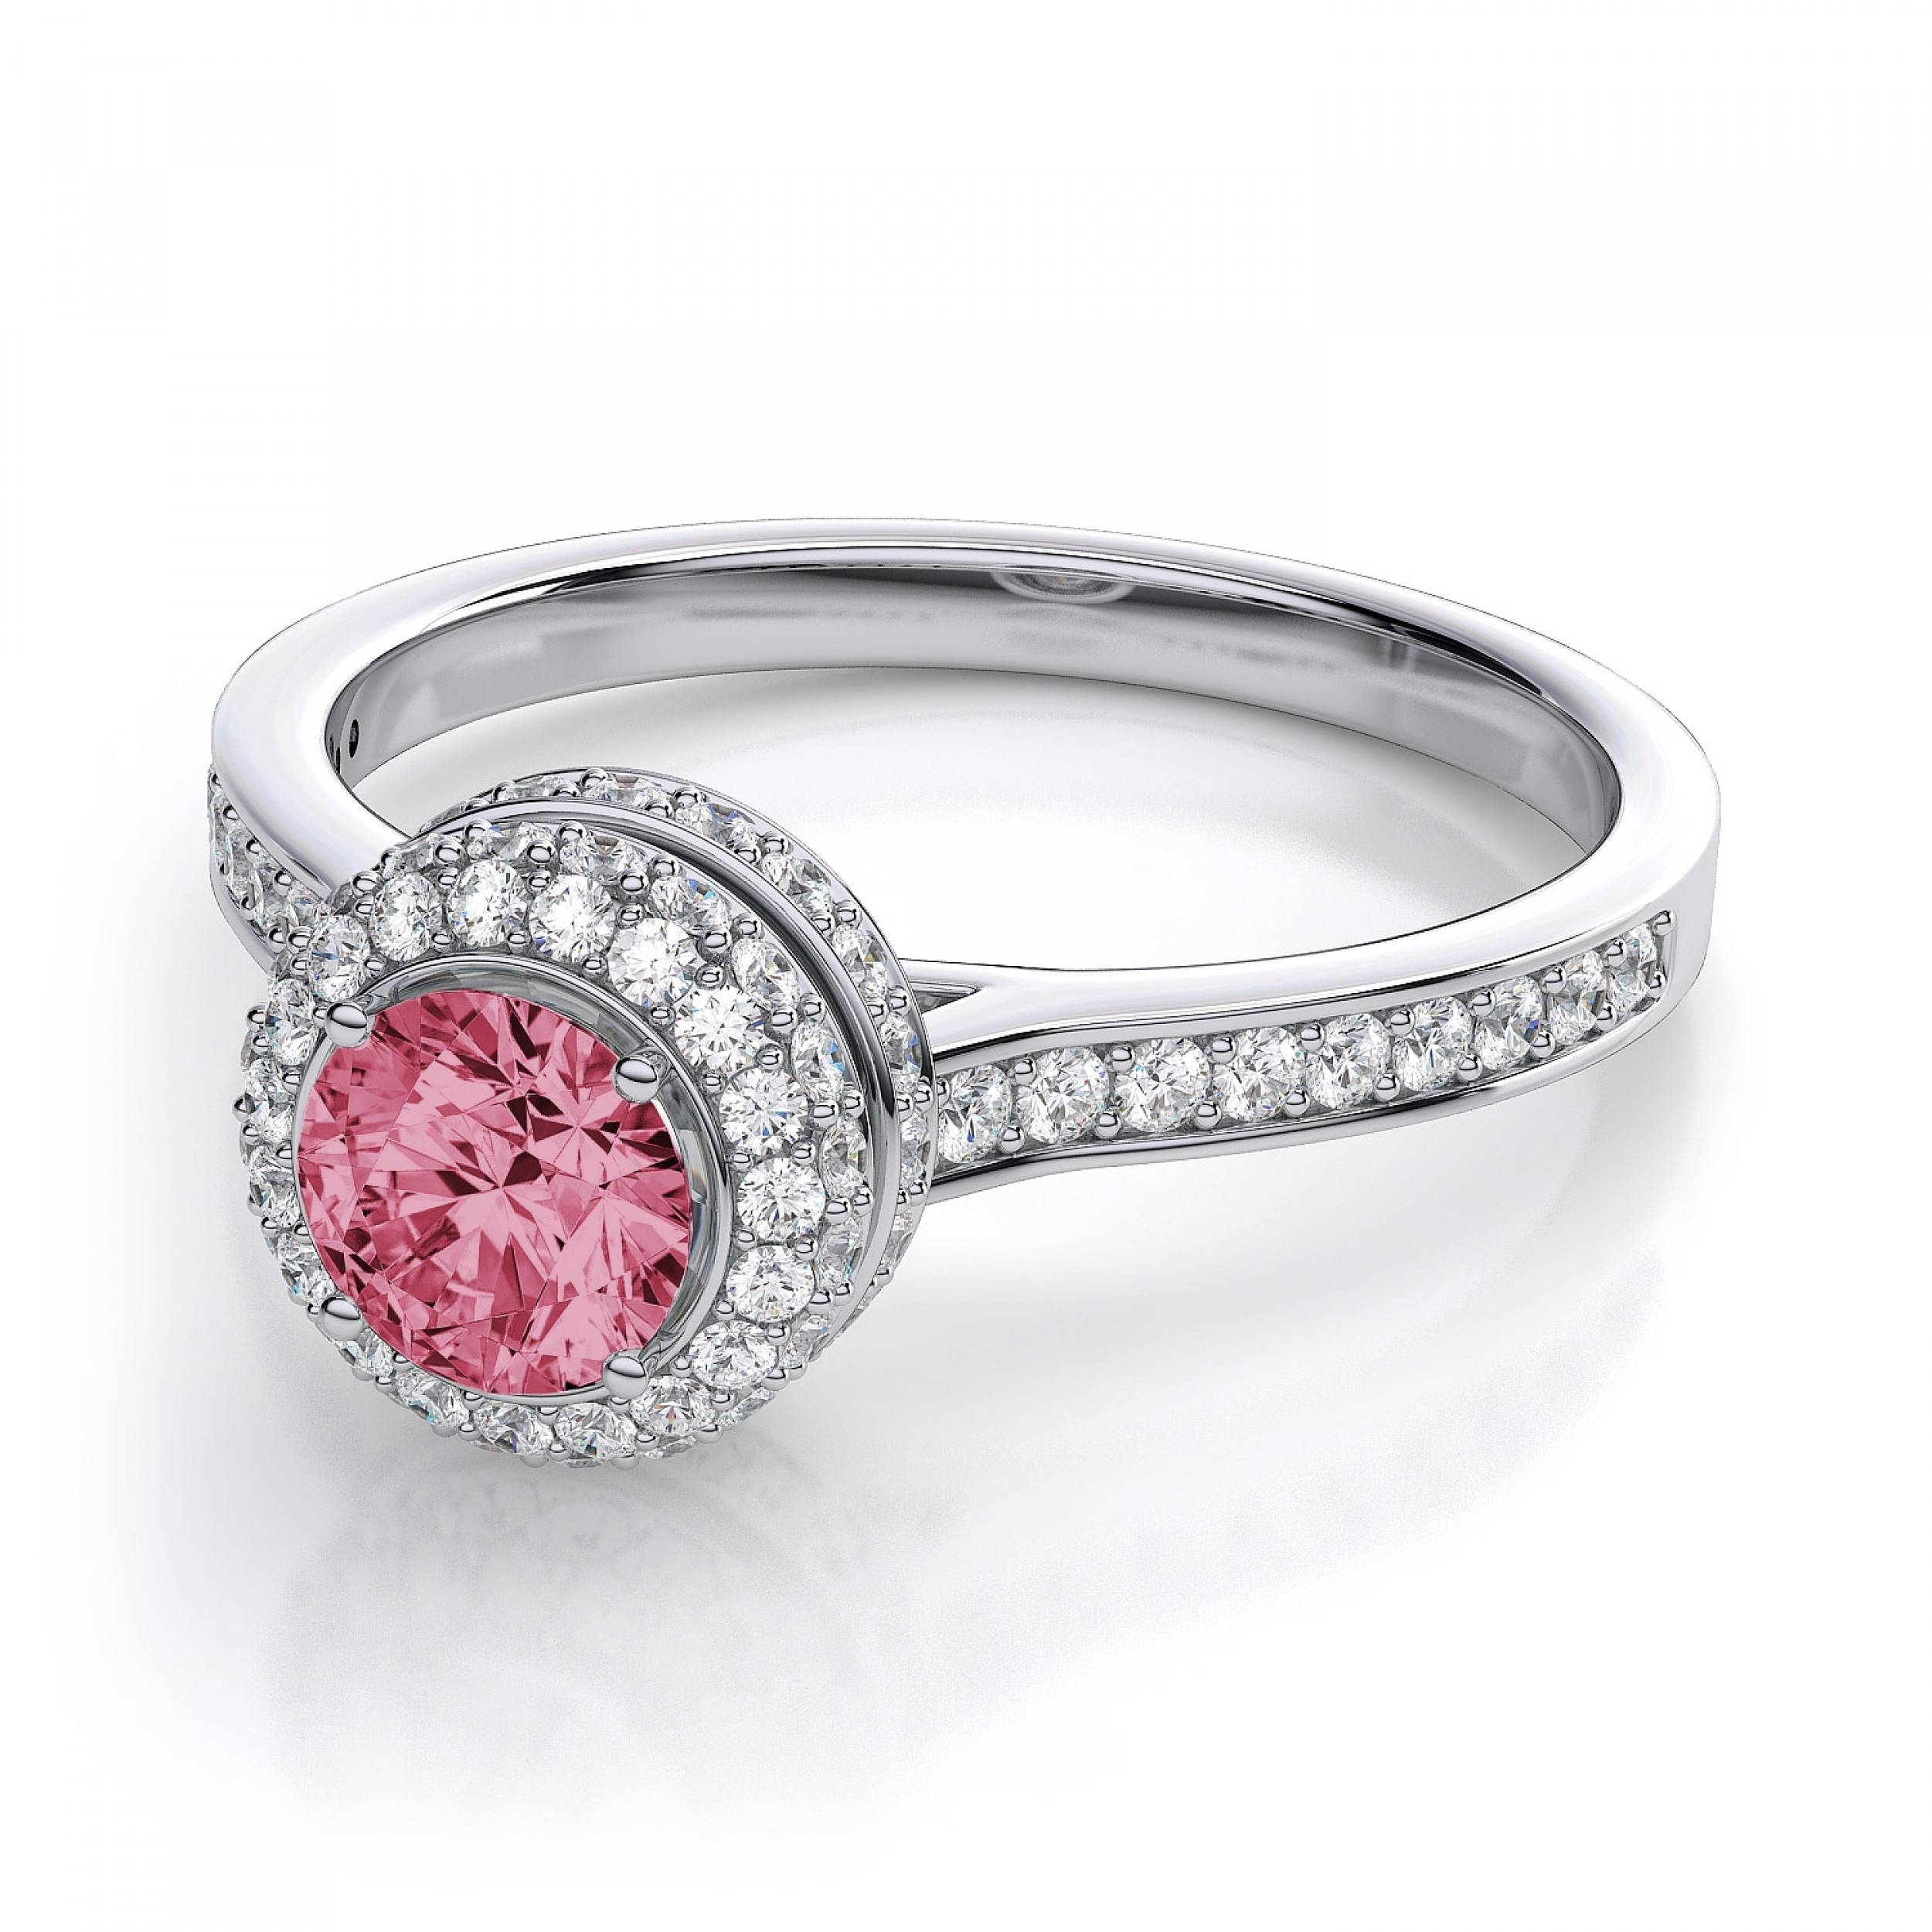 Vintage Halo Diamond And Pink Sapphire Engagement Ring In 18K Throughout Pink Sapphire Engagement Rings (Gallery 6 of 15)